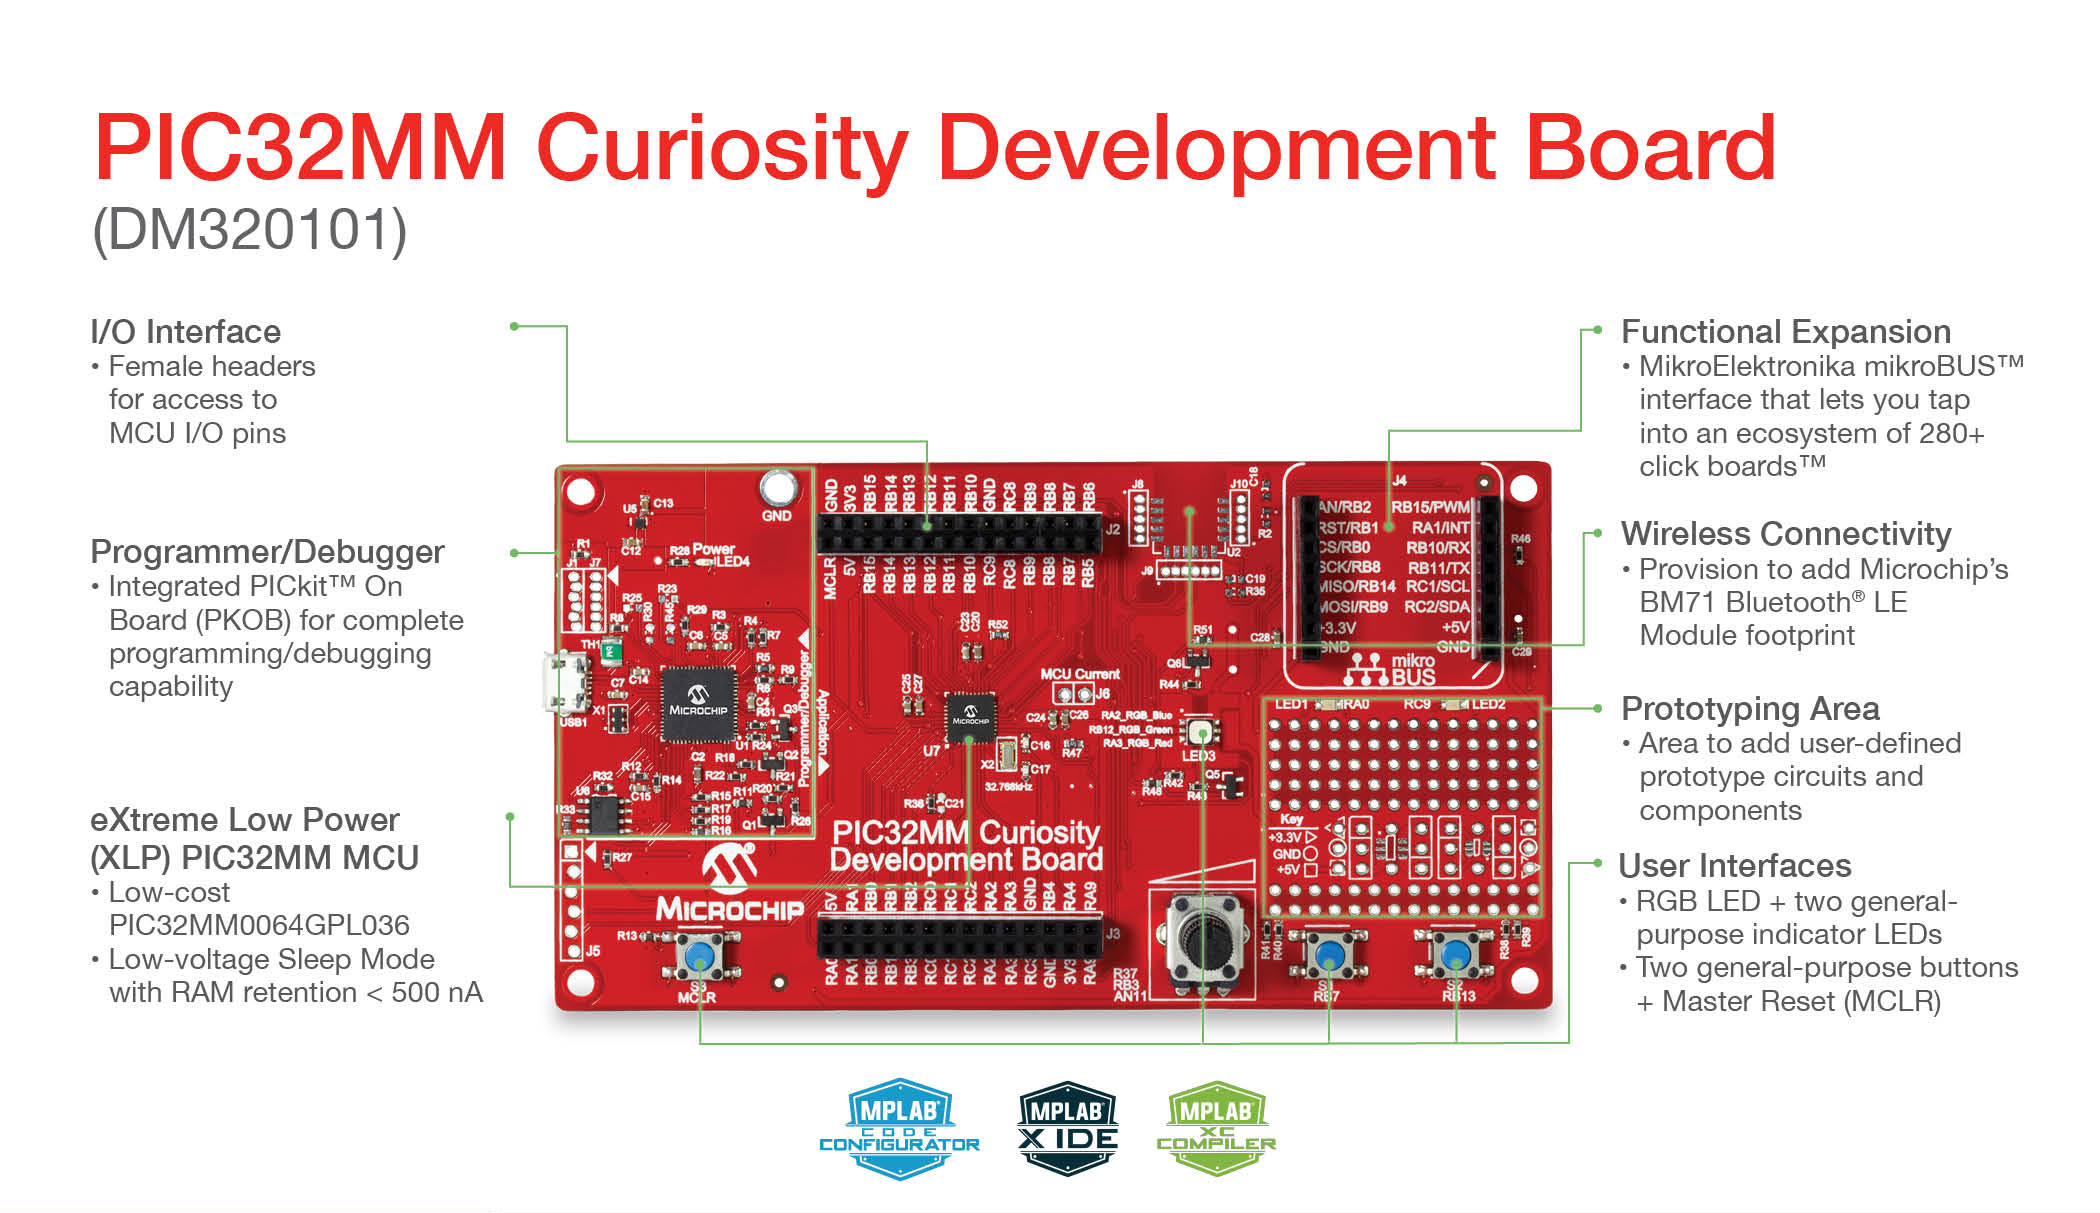 PIC32MM Curiosity Board Call outs